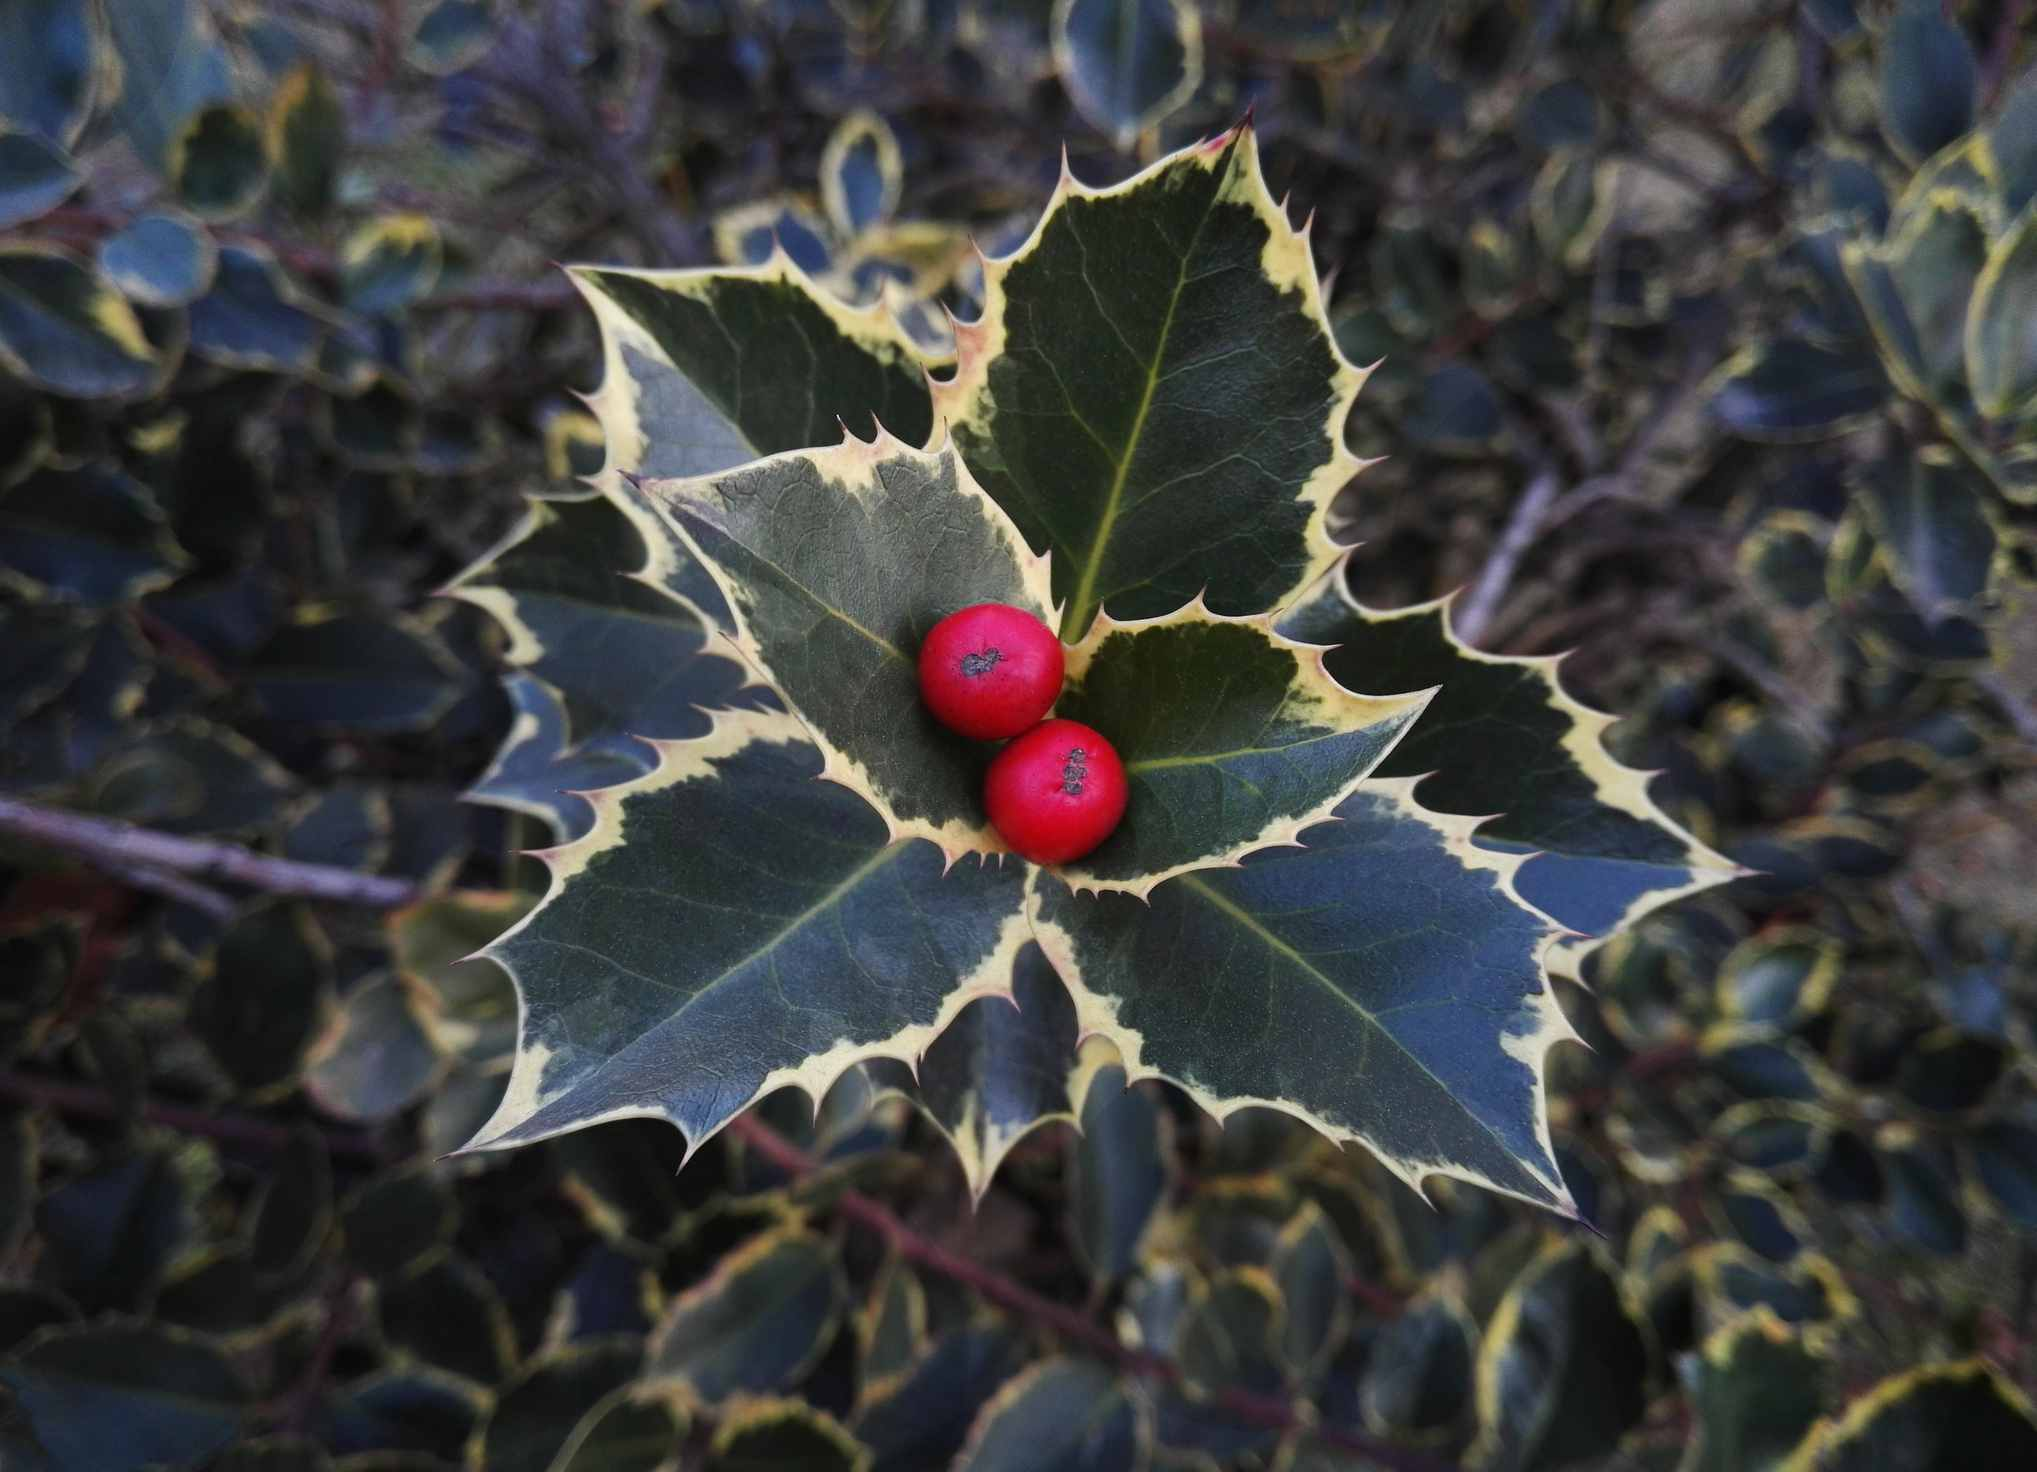 Variegated holly with berries.